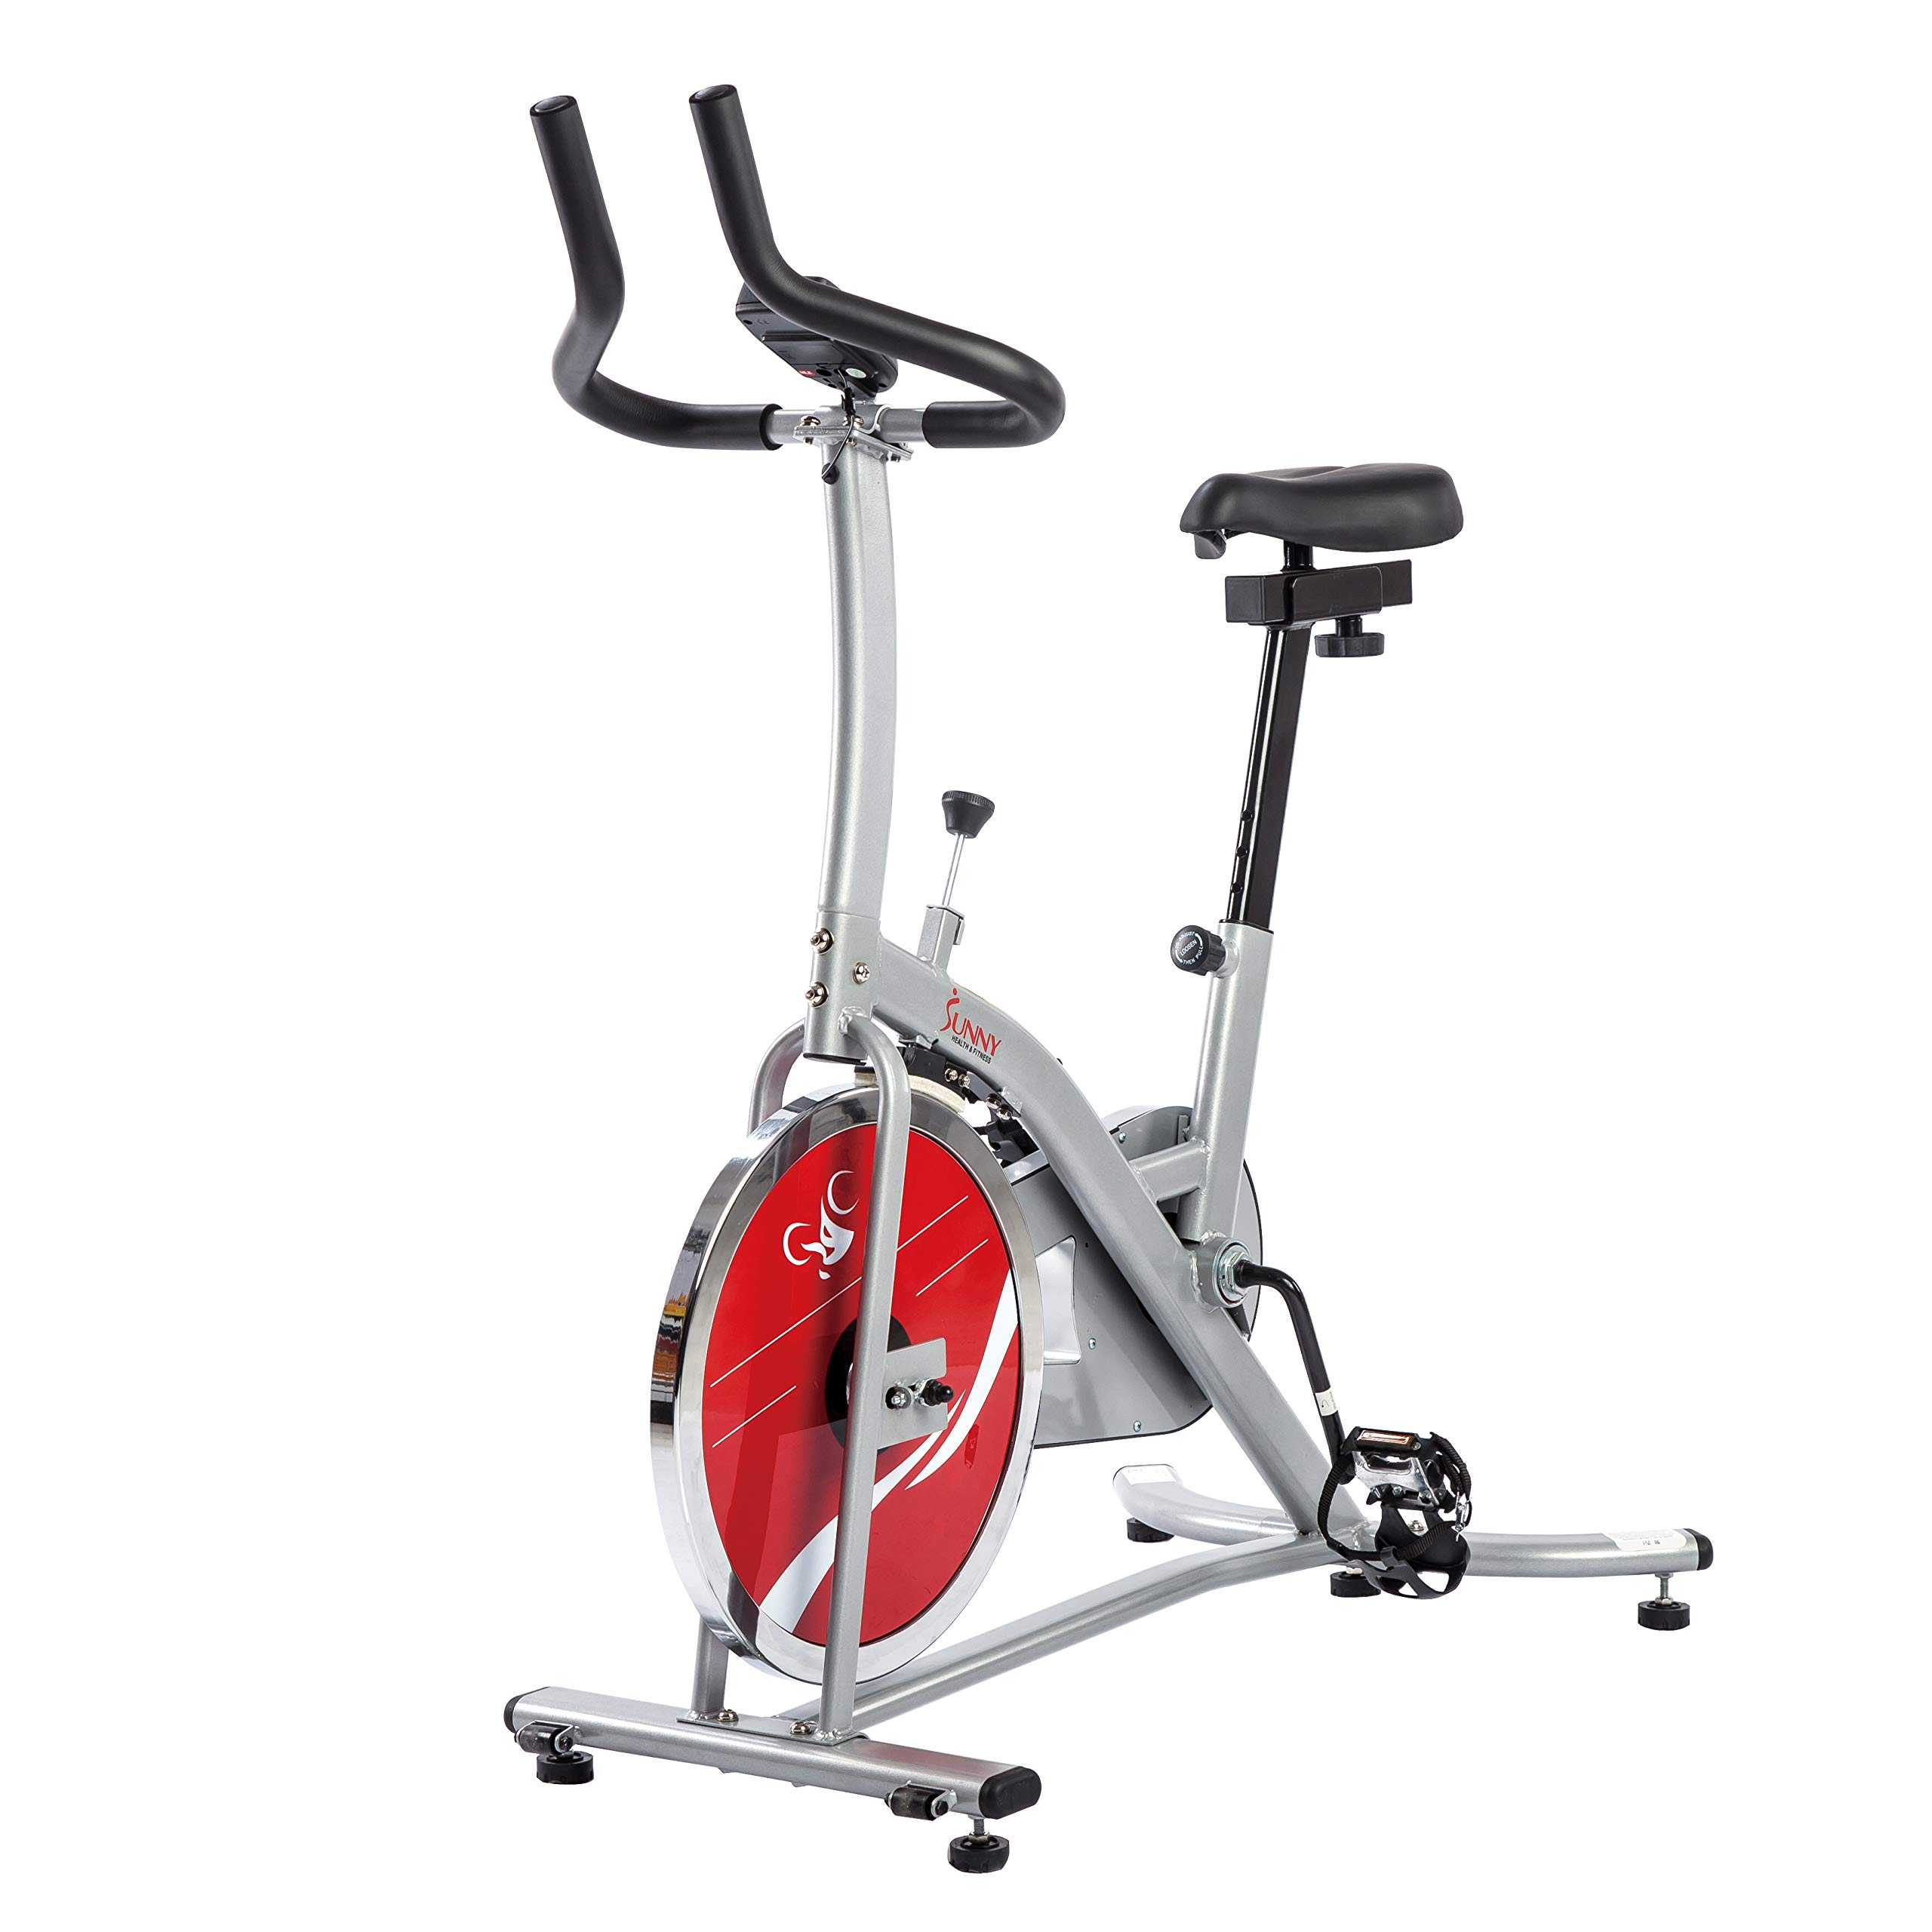 Sunny Health & Fitness Indoor Cycling Exercise Stationary Bike with Monitor and Flywheel Bike - SF-B1203 by Sunny Health & Fitness (Image #9)